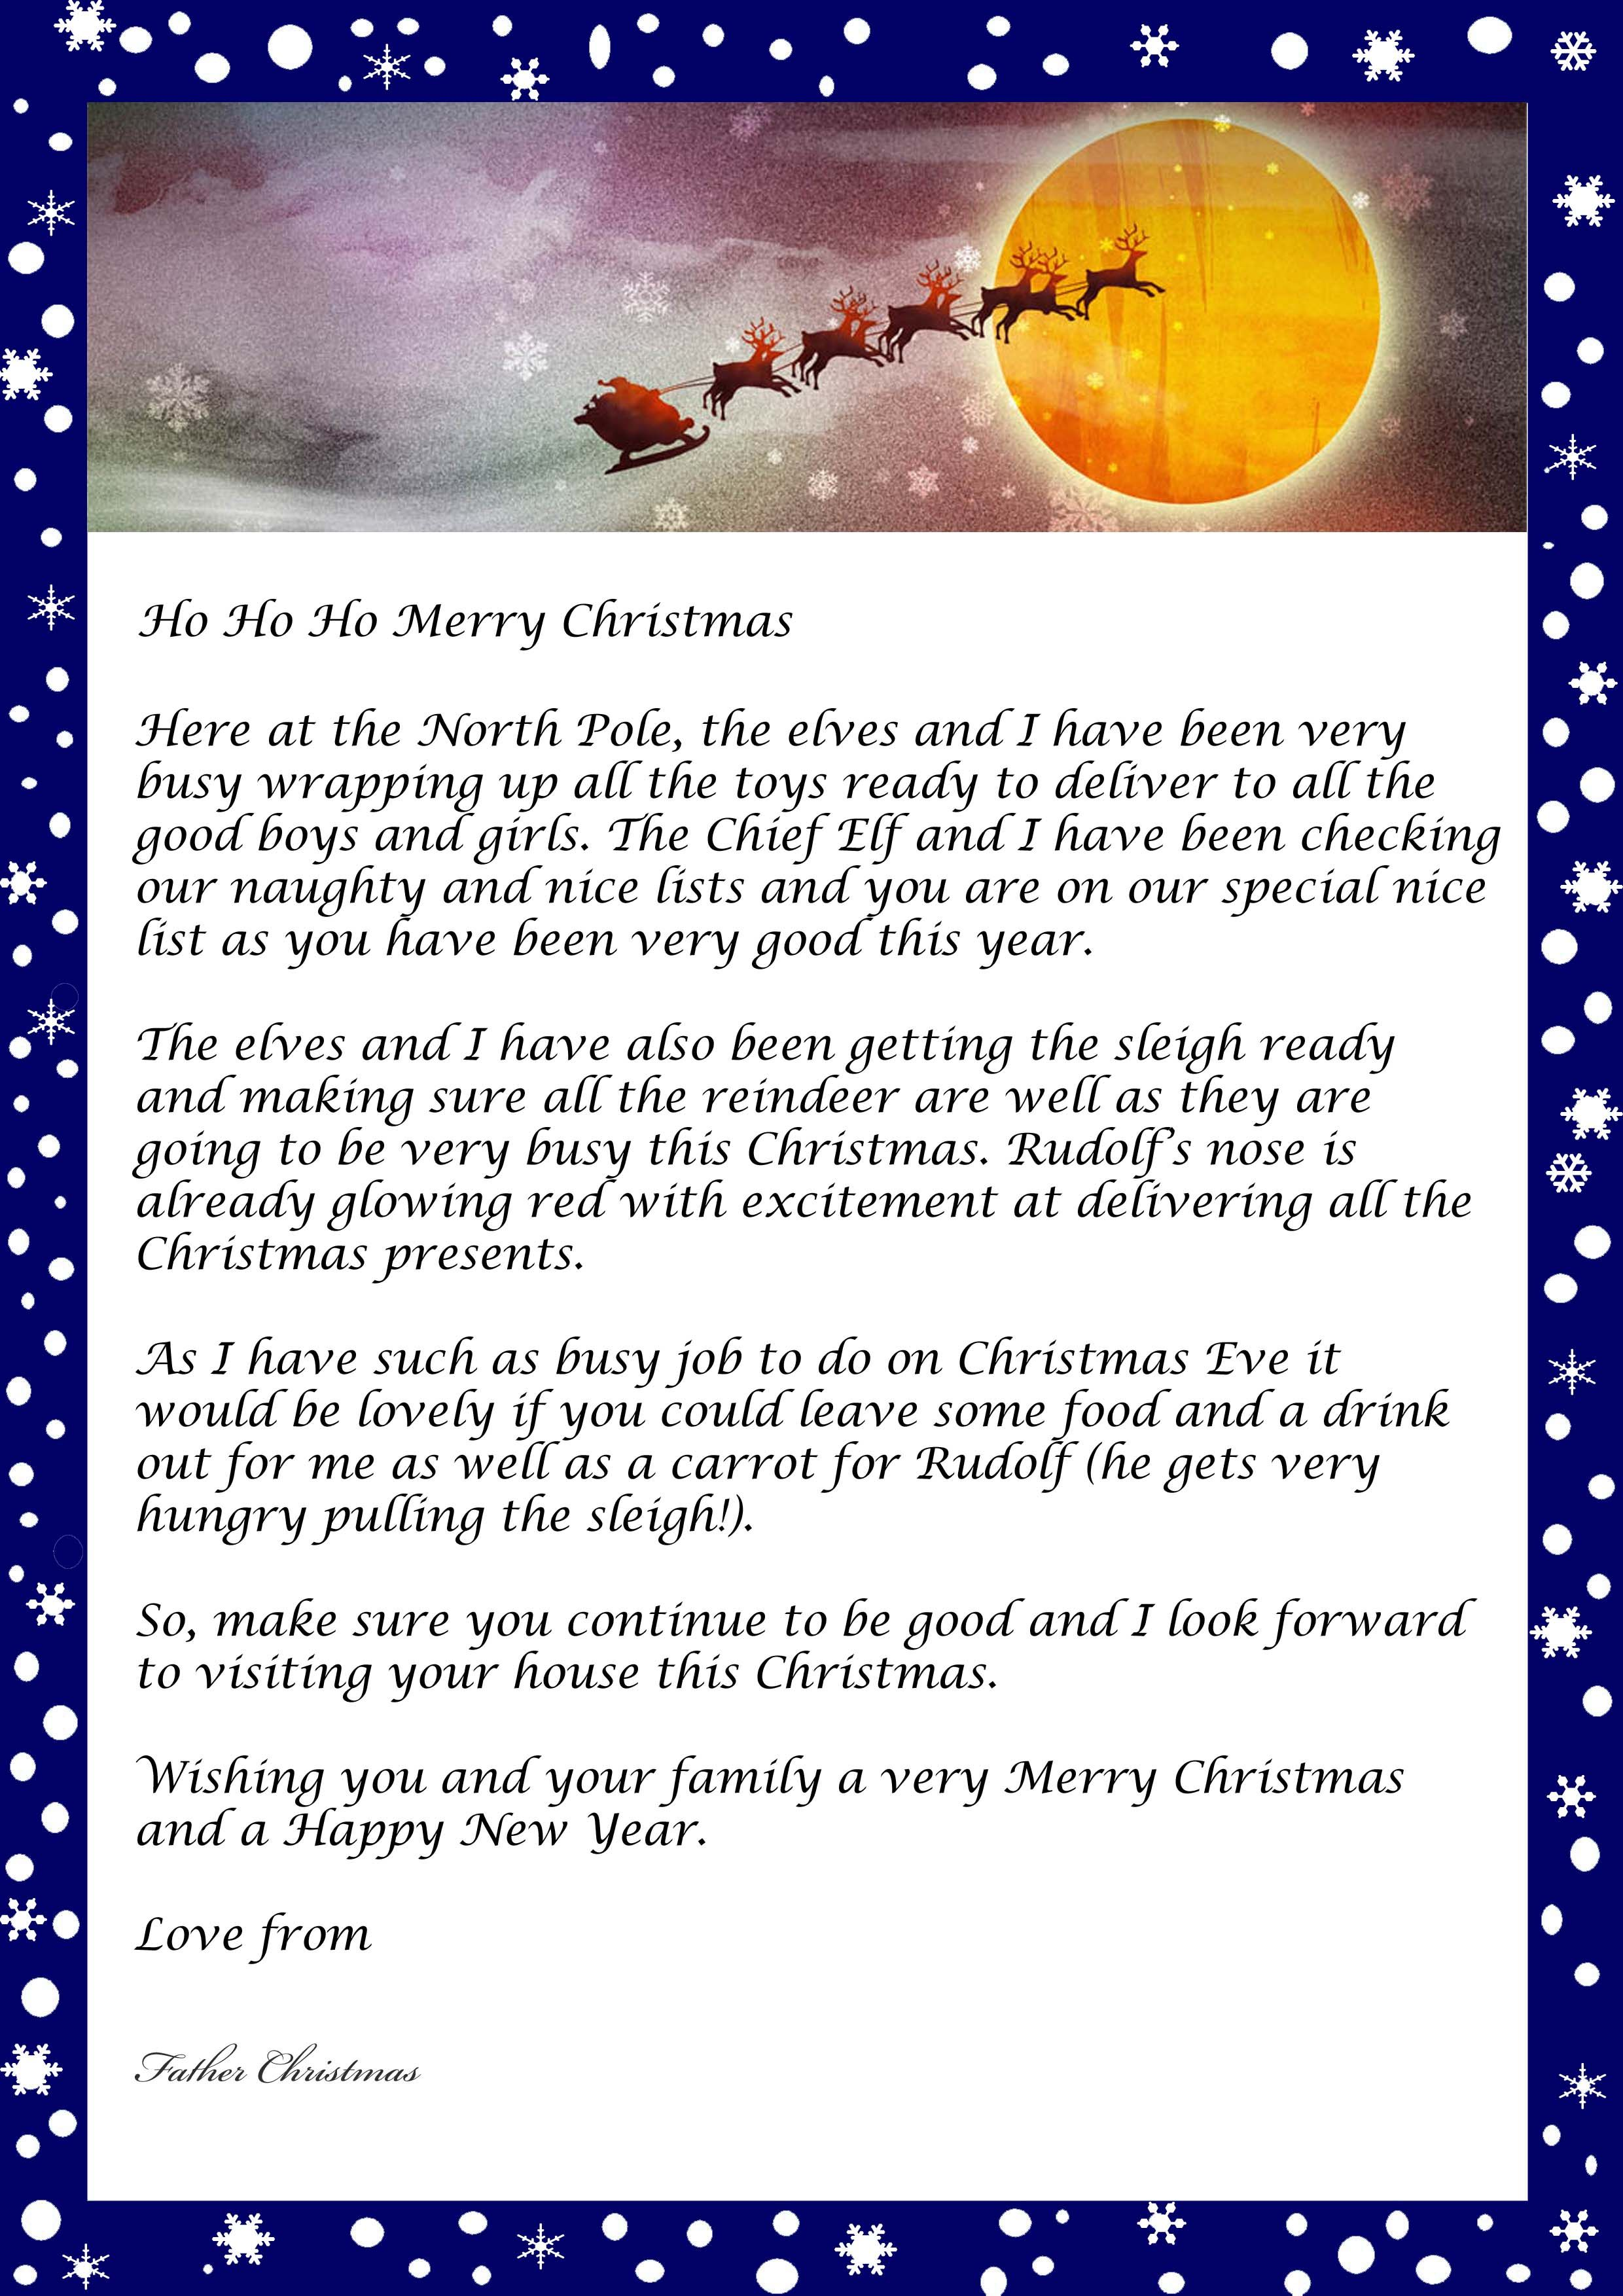 Letter From Father Christmas Free Printable Template 2 480 3 508 Pixels